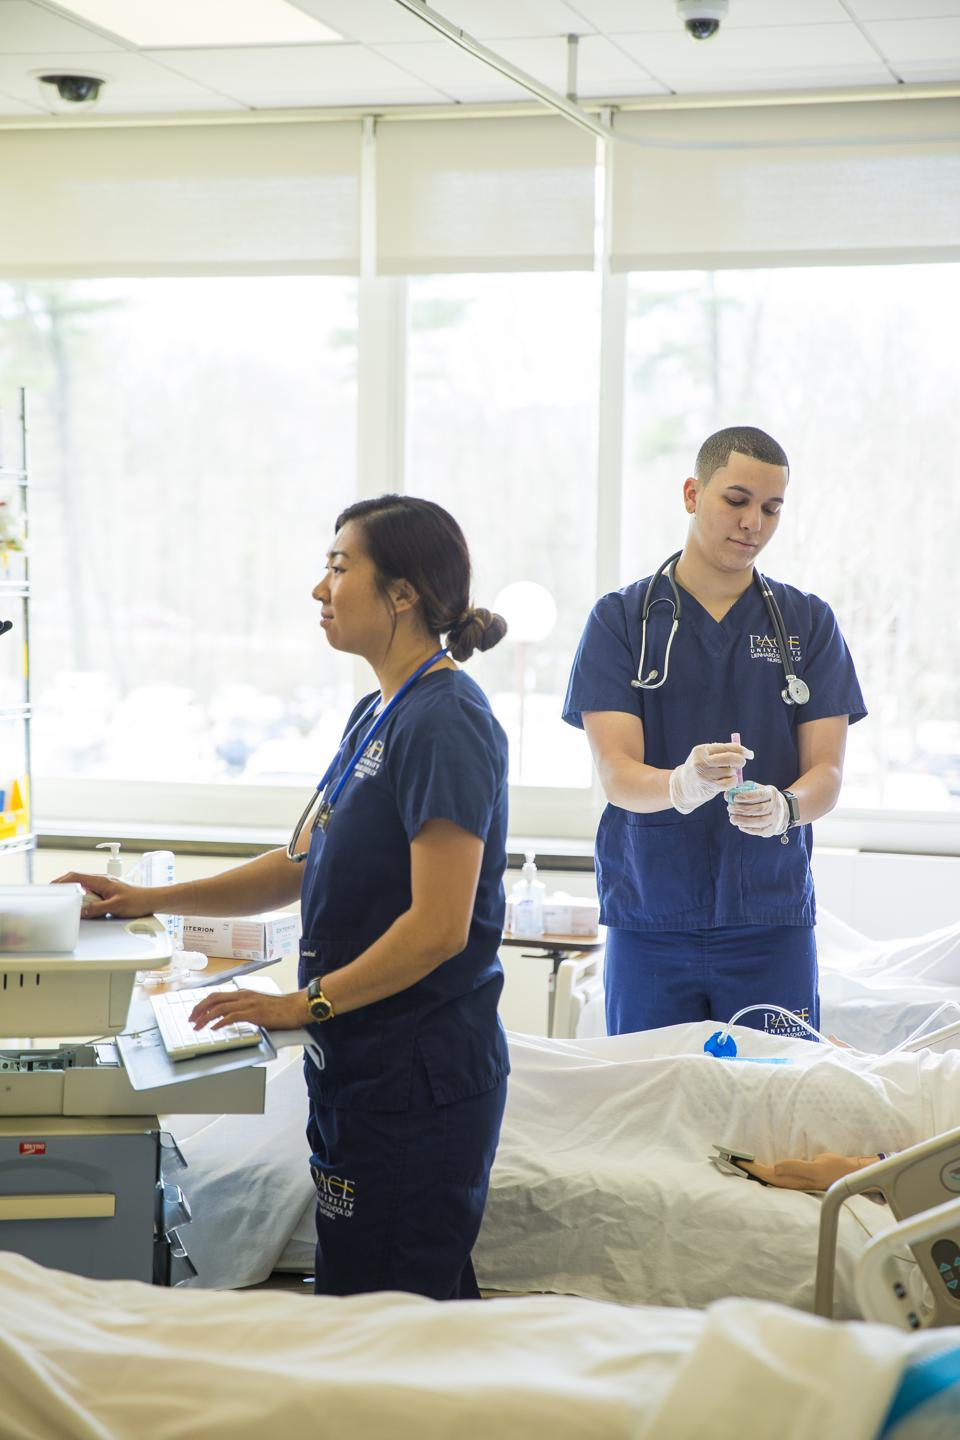 What We Can All Learn From Nurses